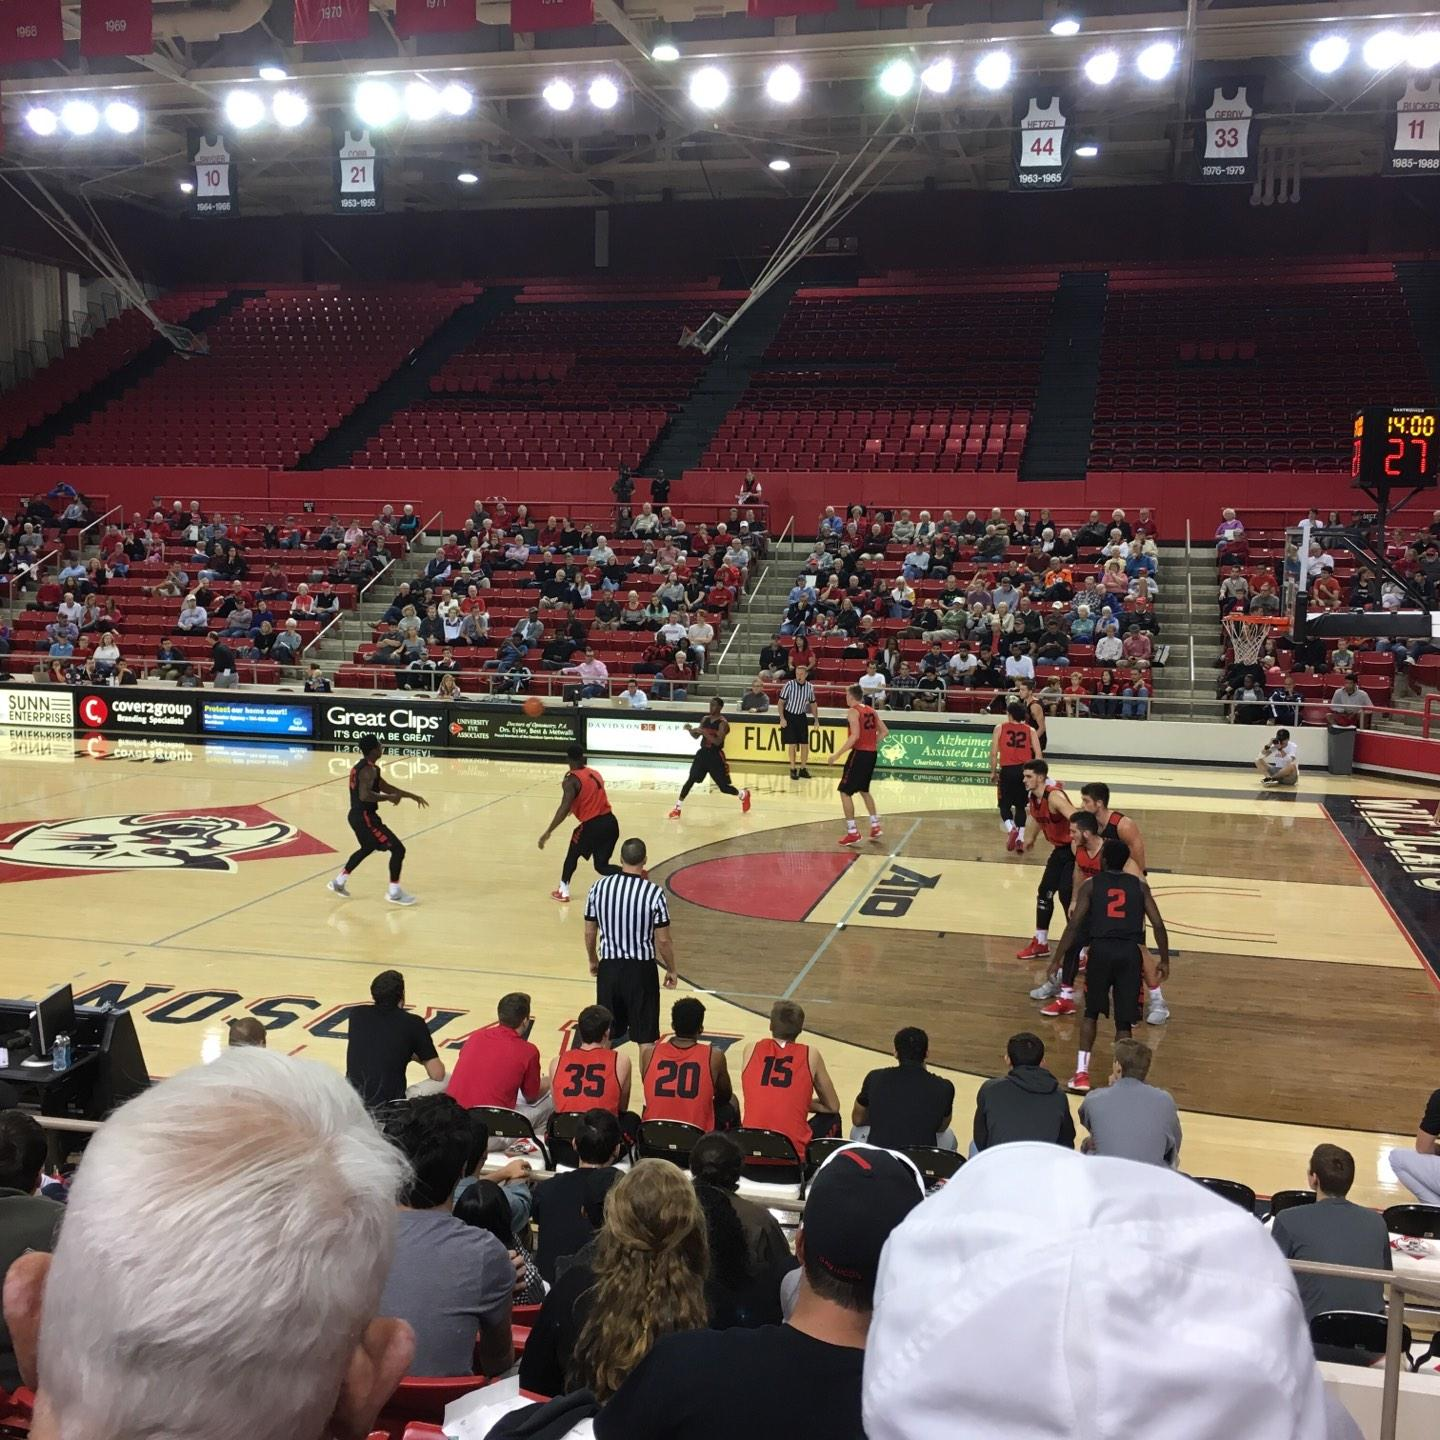 John M. Belk Arena Section 8 Row D Seat 1